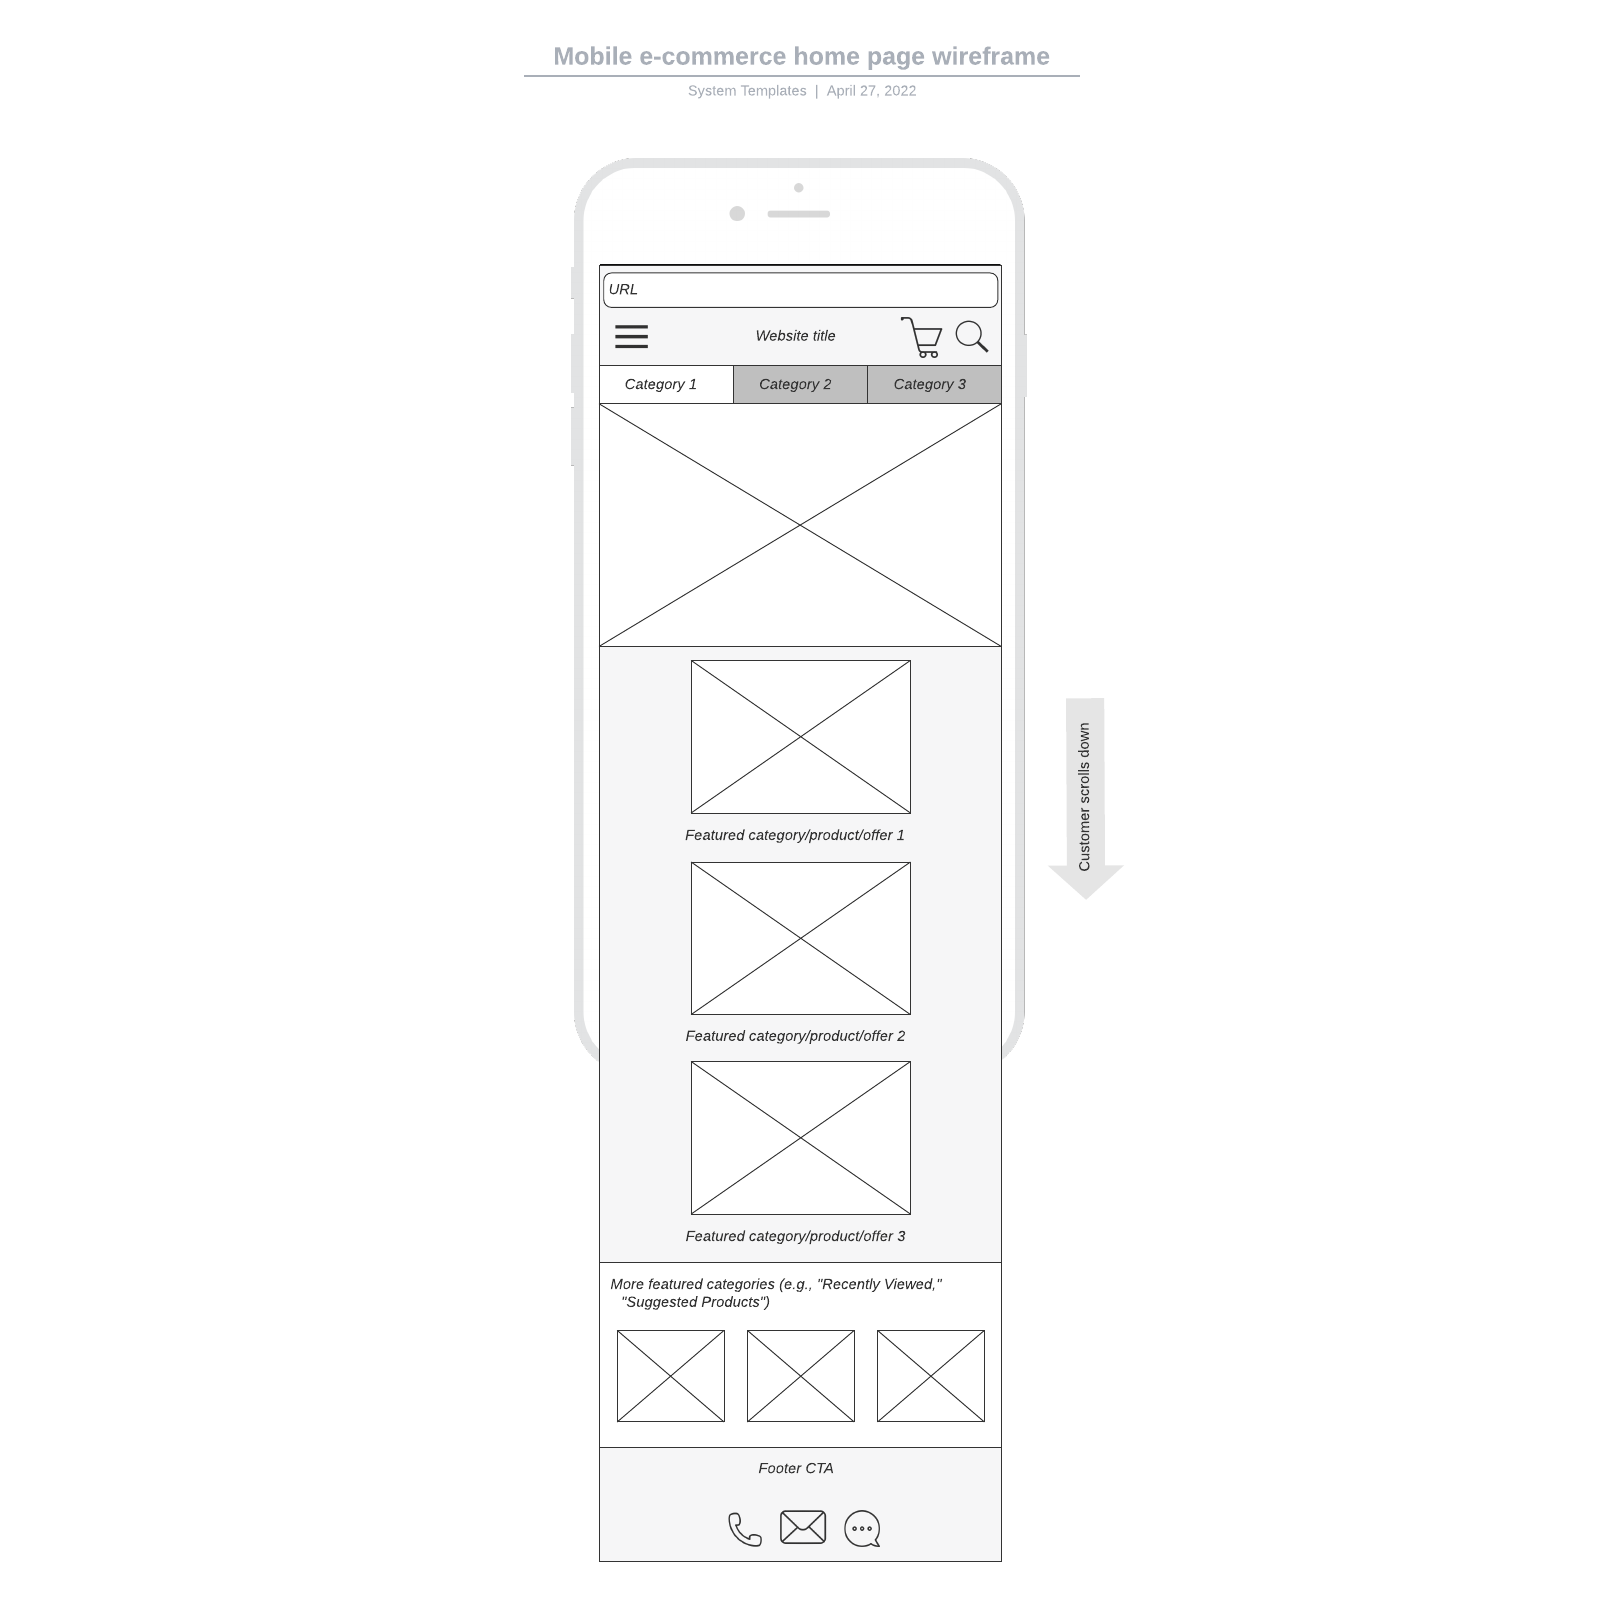 Mobile e-commerce home page wireframe